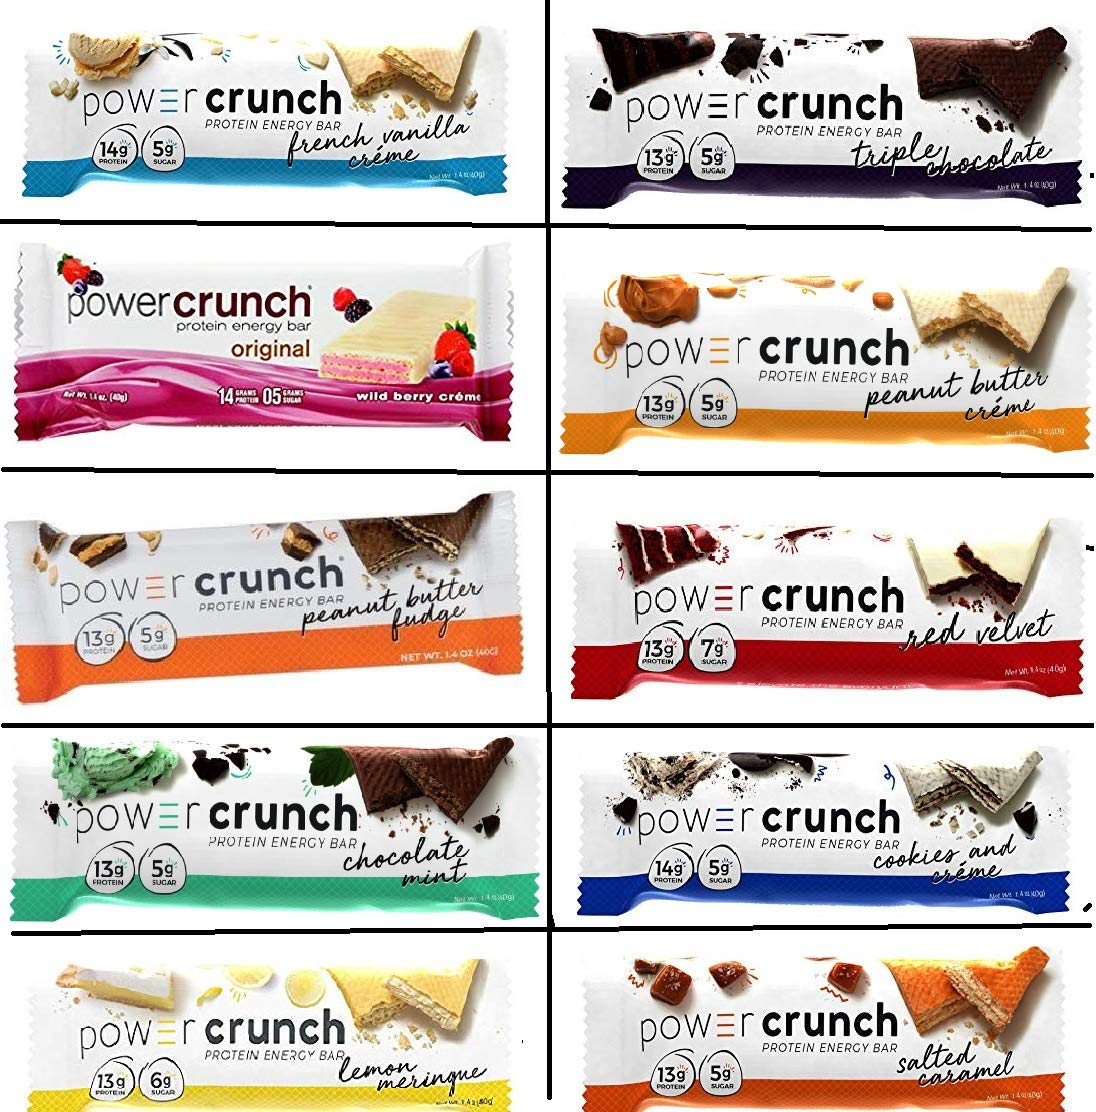 Power Crunch Protein free Energy Bar 1.4-Ounce Los Angeles Mall Pack Orignal Variety